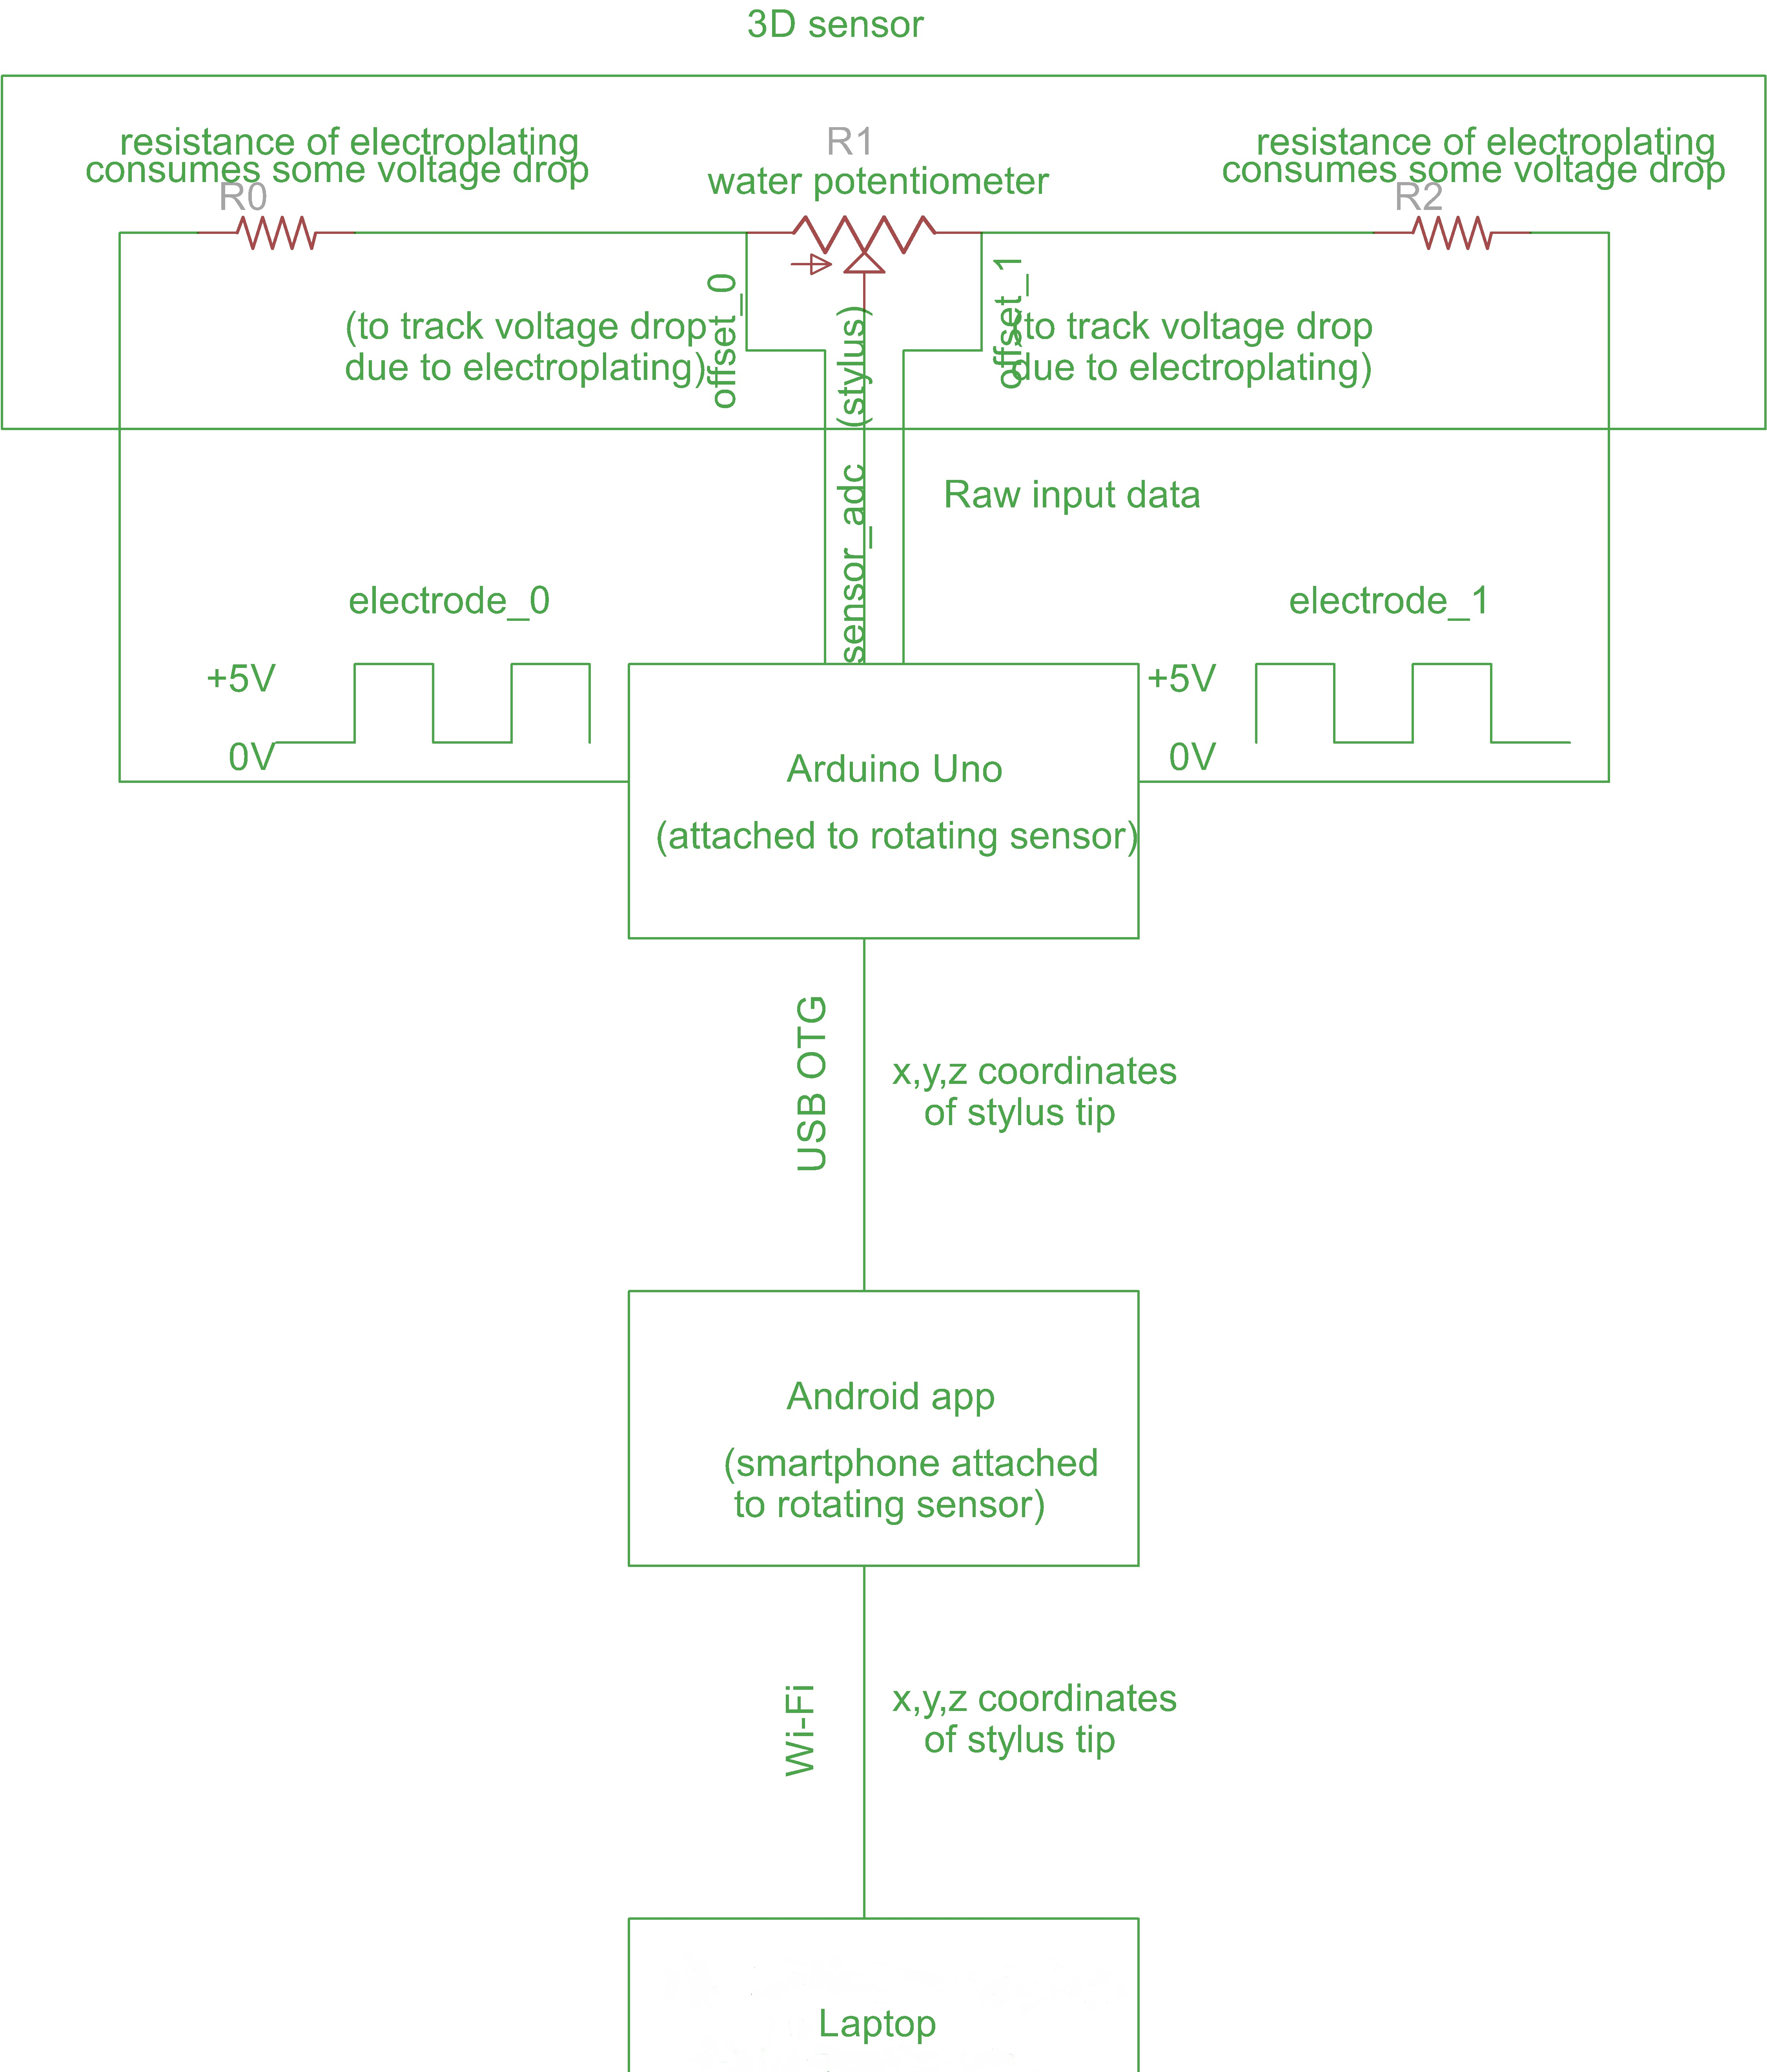 flowchart depicting the flow of data from Arduino Uno to the client app